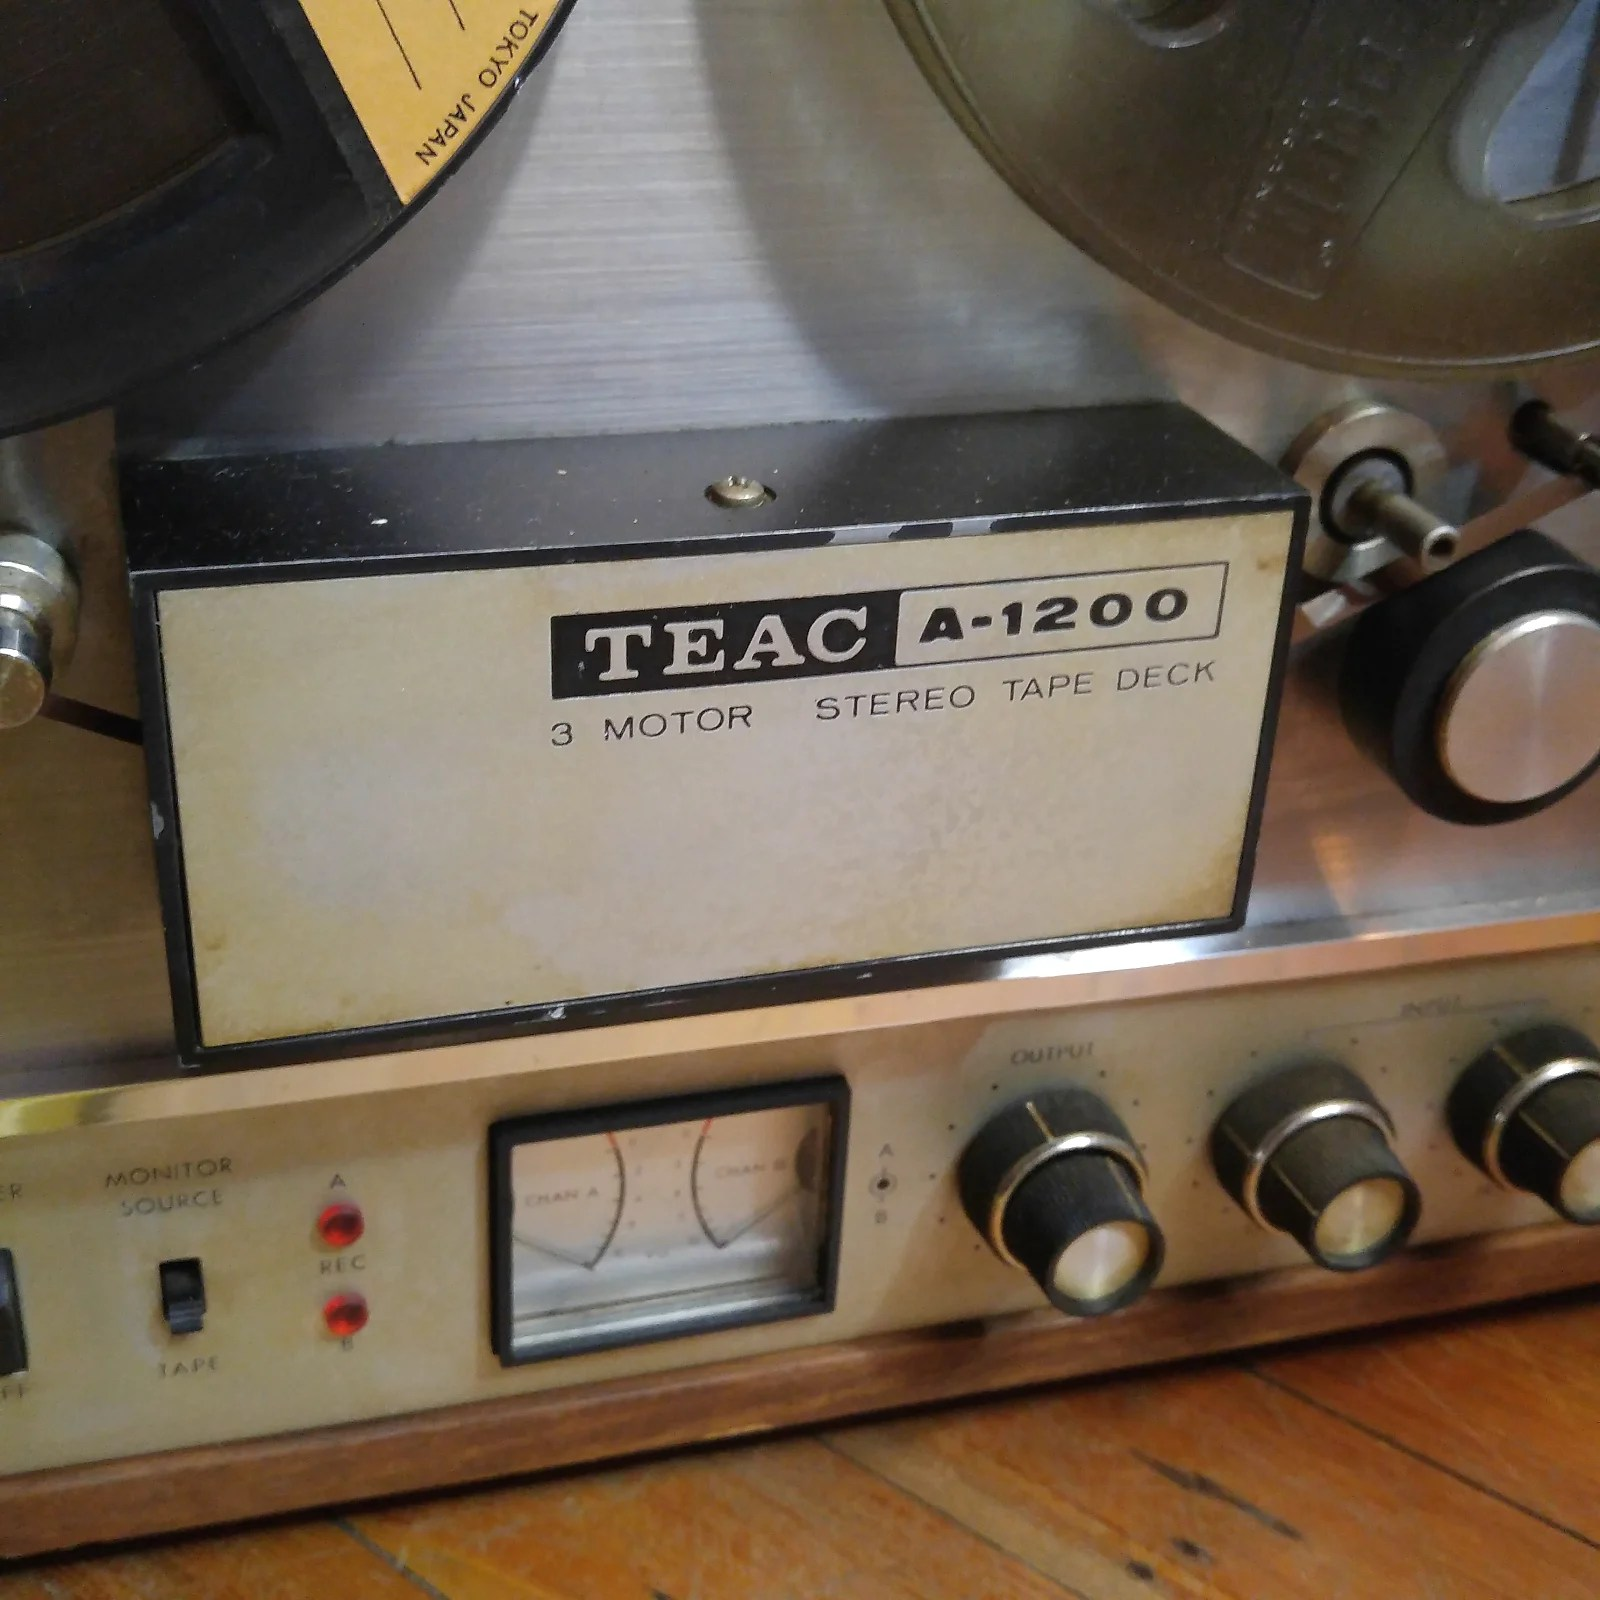 hight resolution of teac a 1200 3 motor stereo reel to reel tape deck 51877 works needs drive